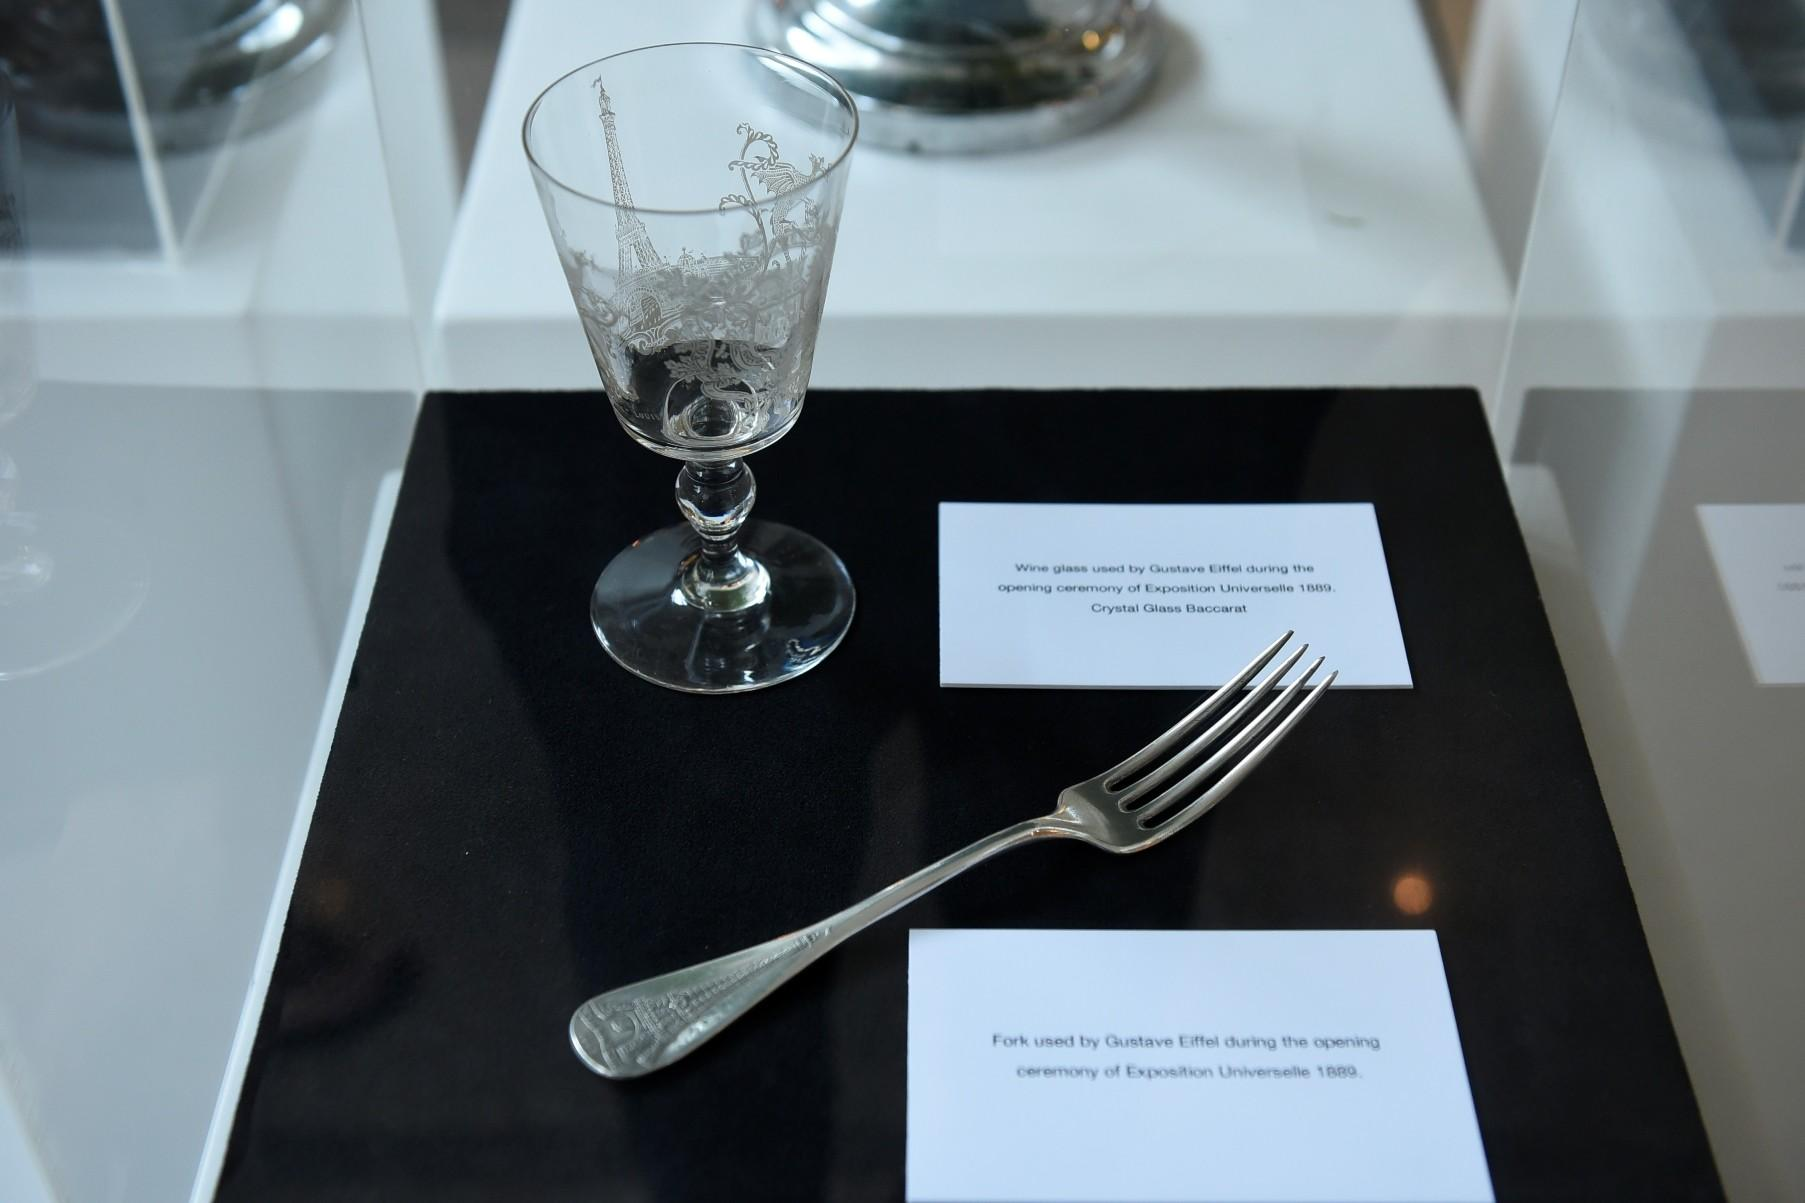 Wine Glass Used Gustave Eiffel During Opening